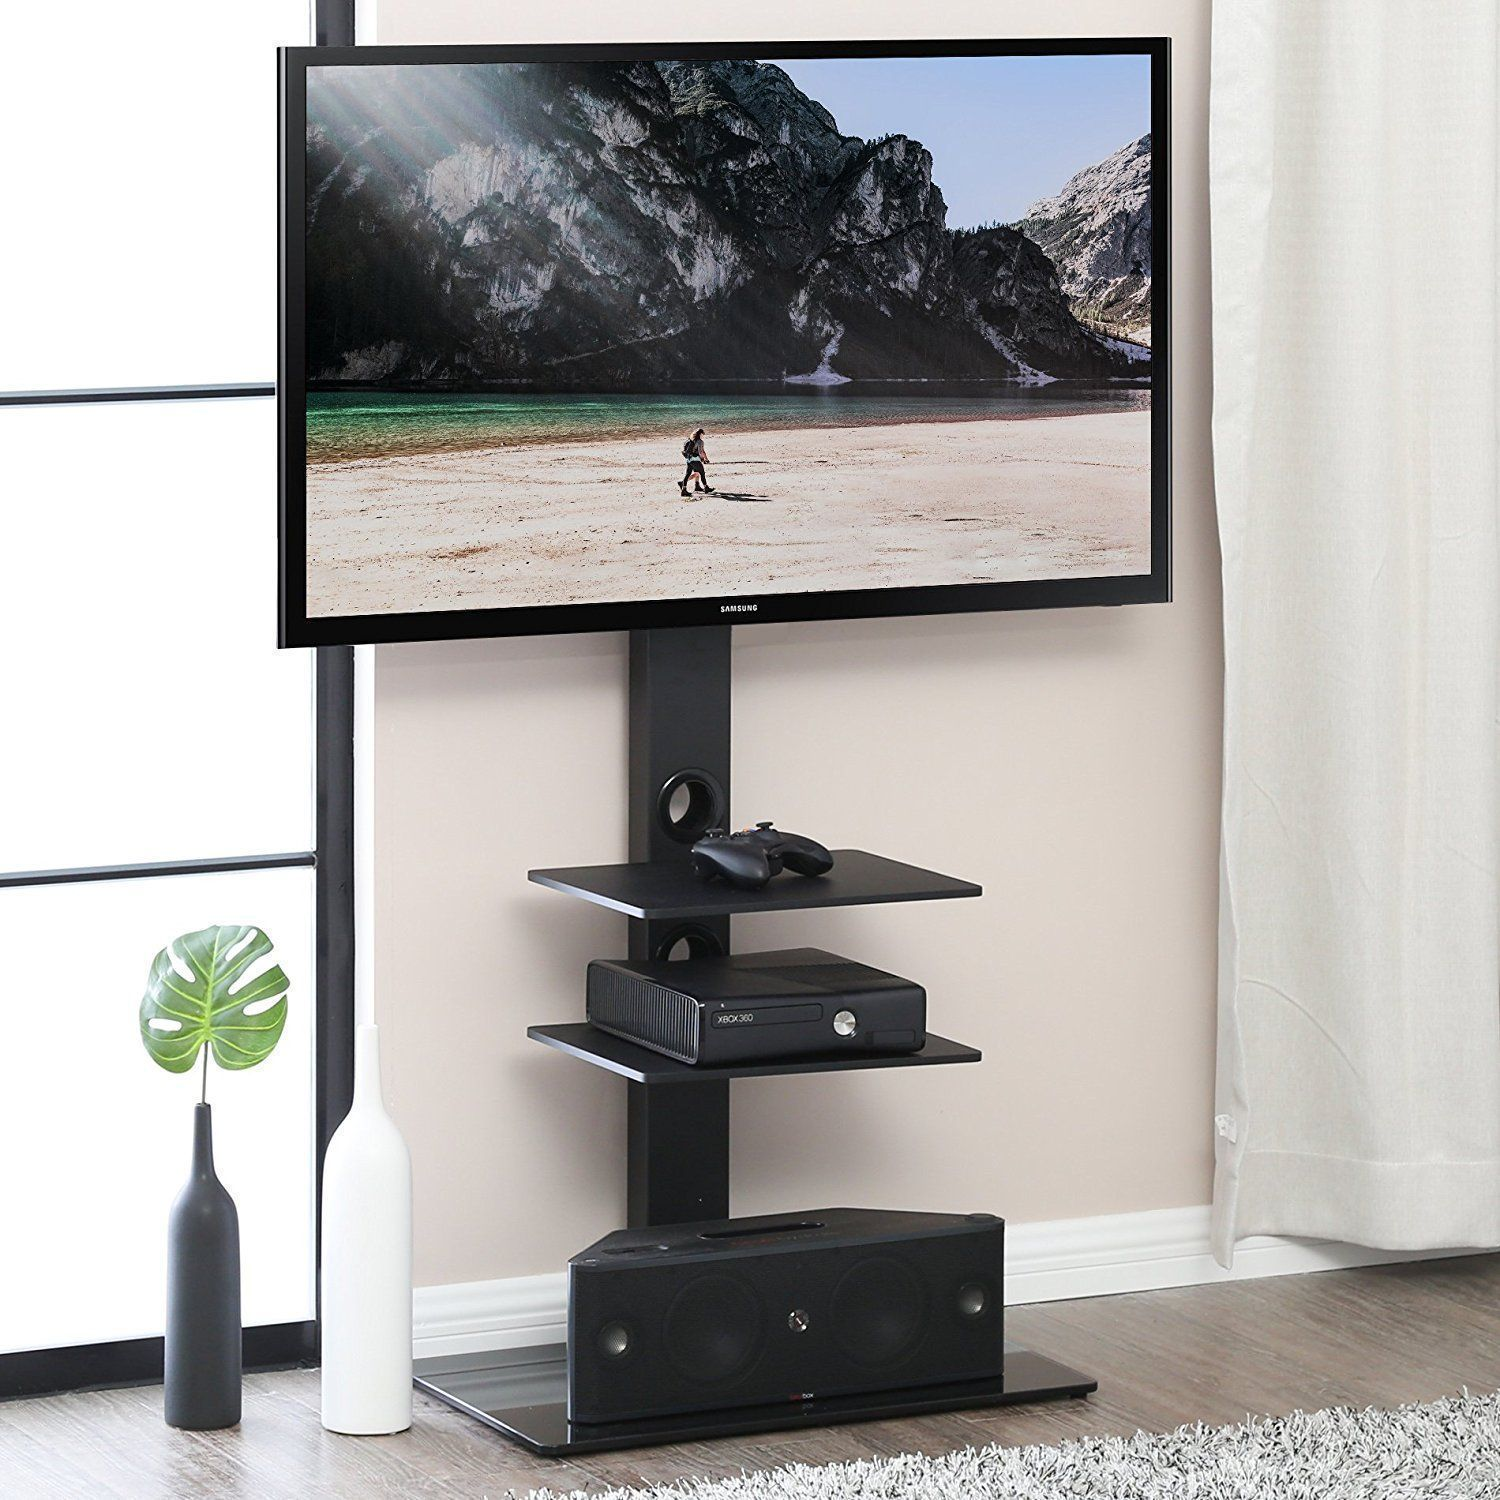 Amazon Com Fitueyes Tt207001mb Swivel Tv Stand And Mount For 32 65